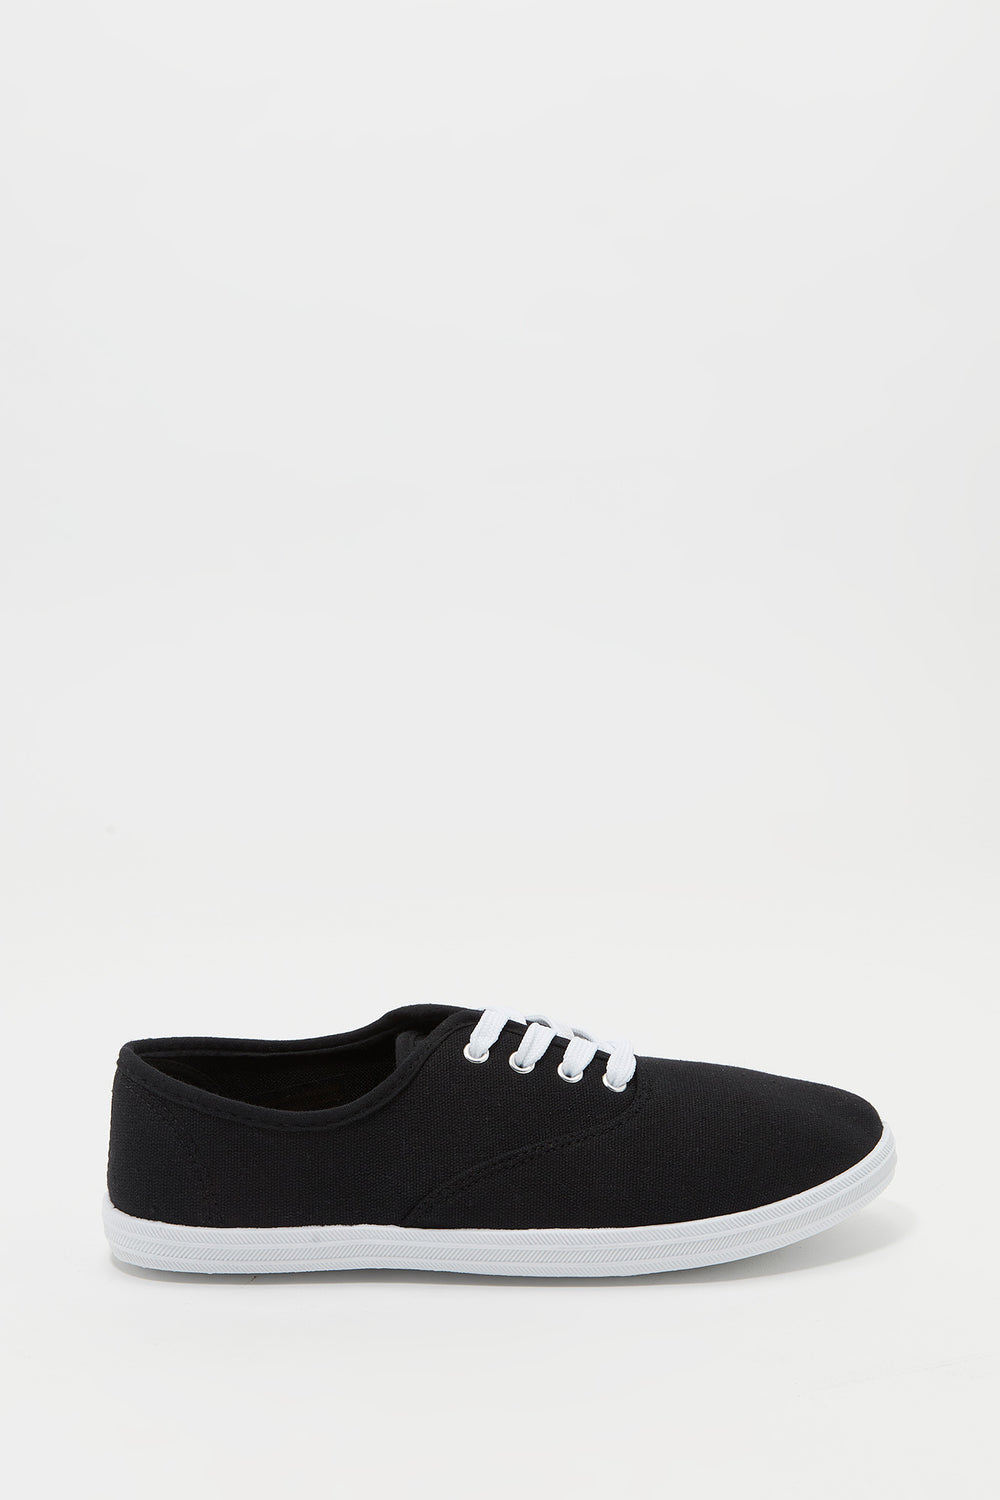 Classic Lace Up Tennis Shoe Black